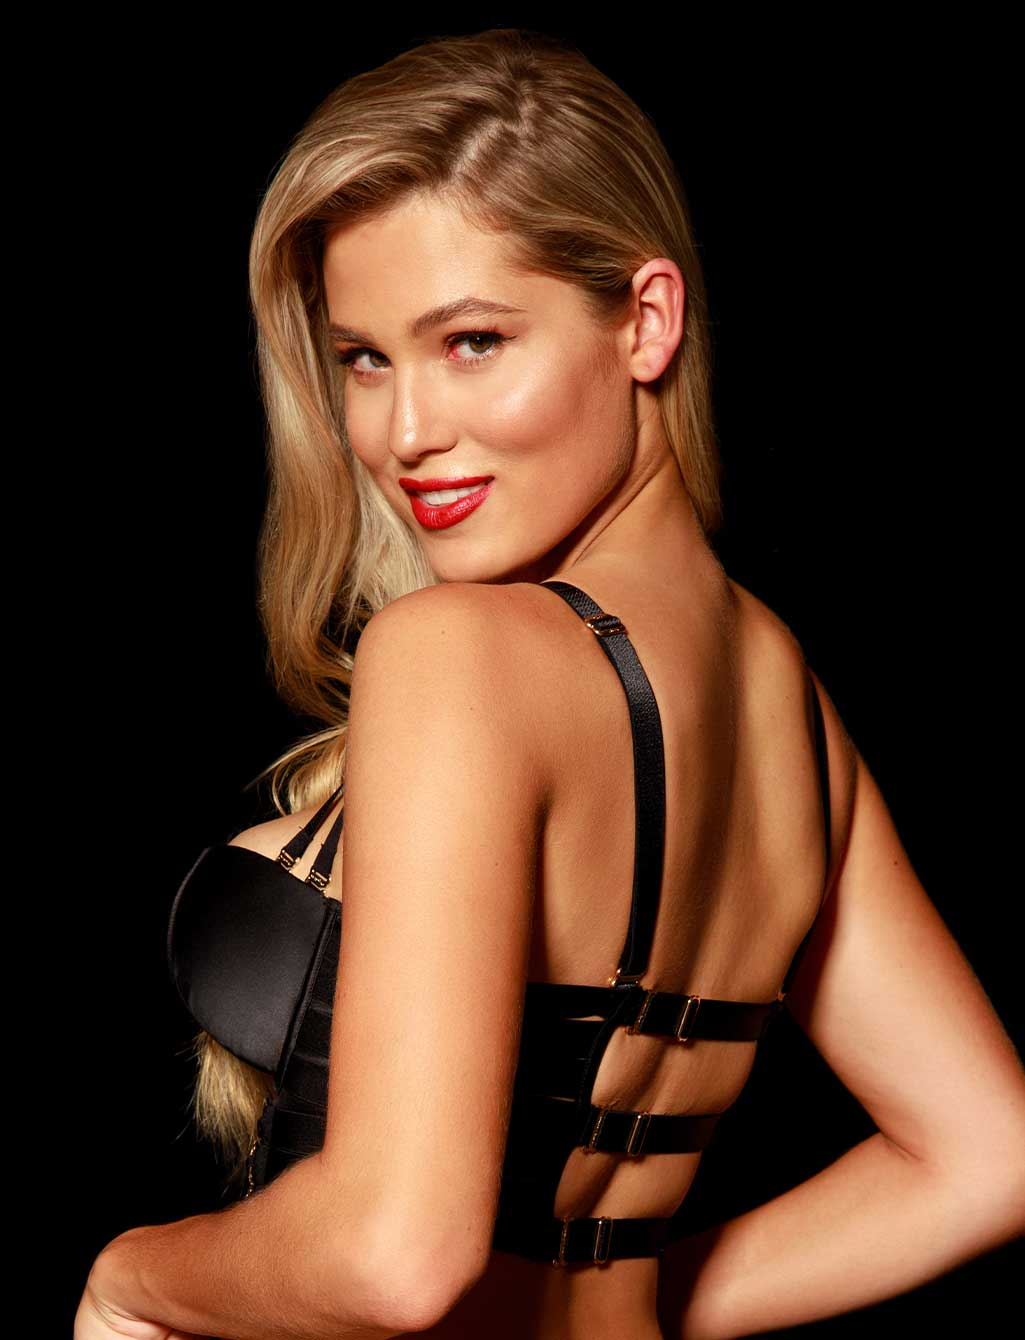 Stevie Black Push Up Lingerie Set | Shop  Lingerie Honey Birdette